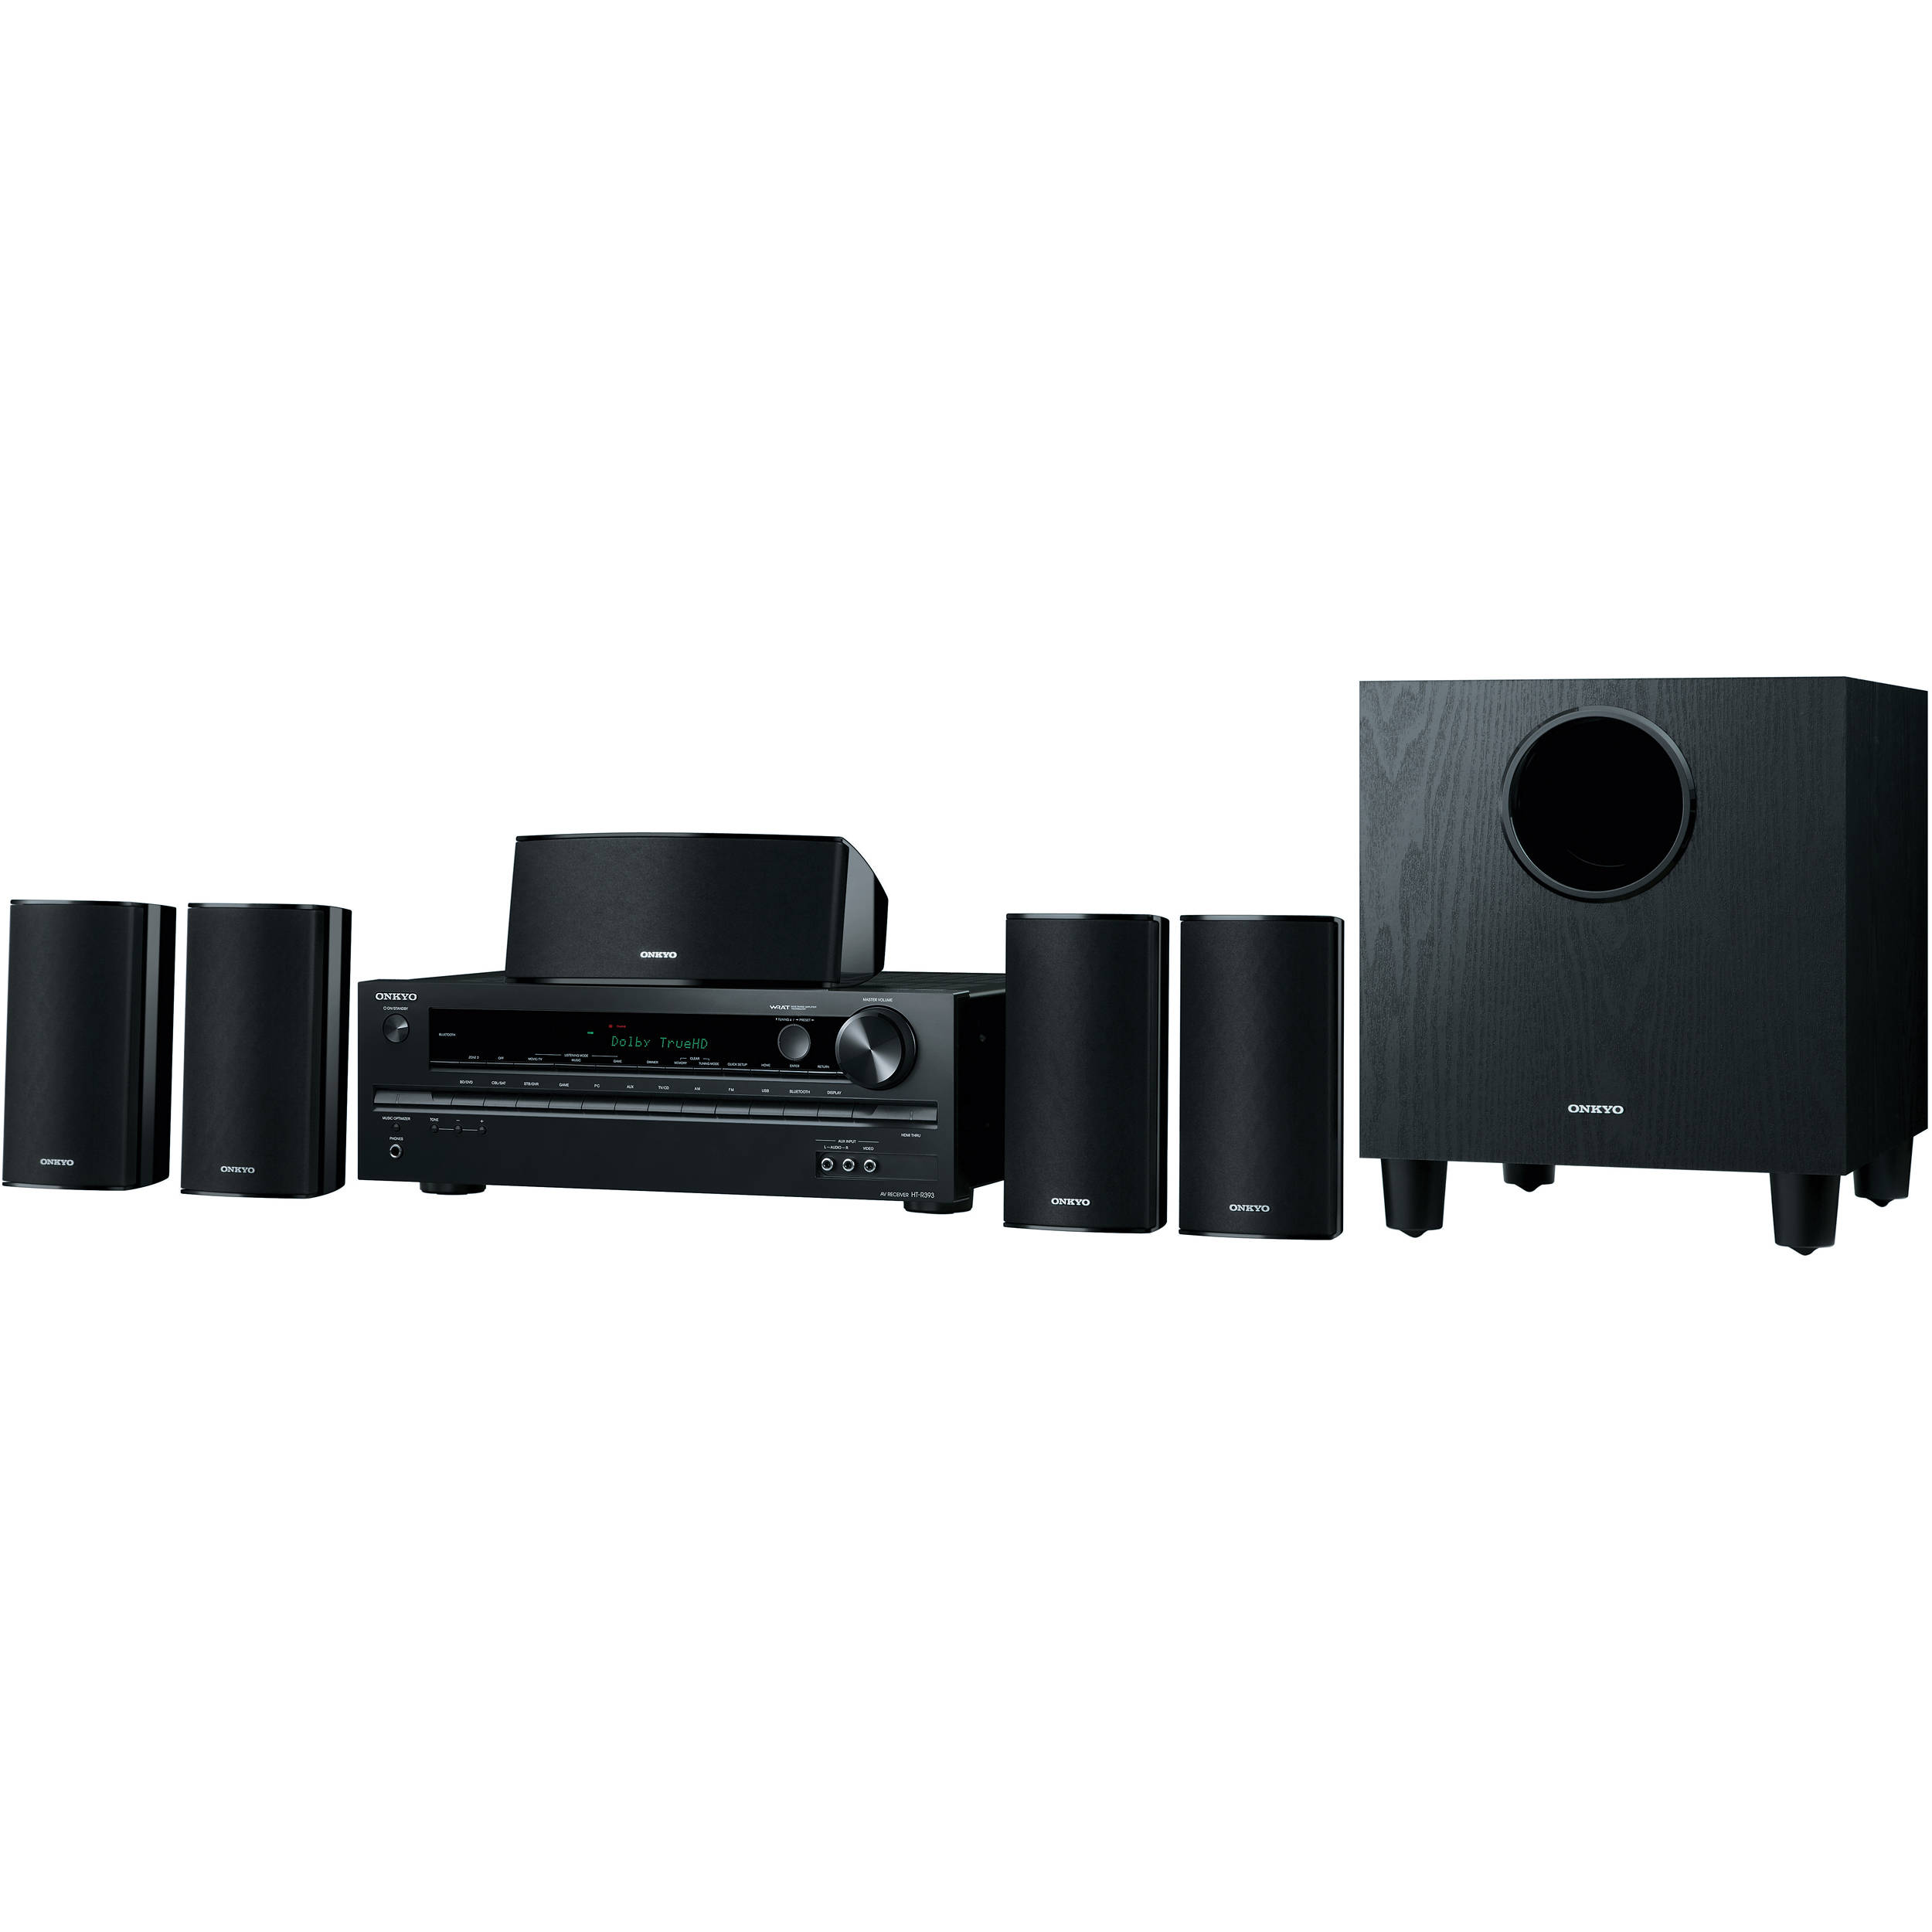 onkyo ht s3700 5 1 channel home theater system ht s3700 b h. Black Bedroom Furniture Sets. Home Design Ideas